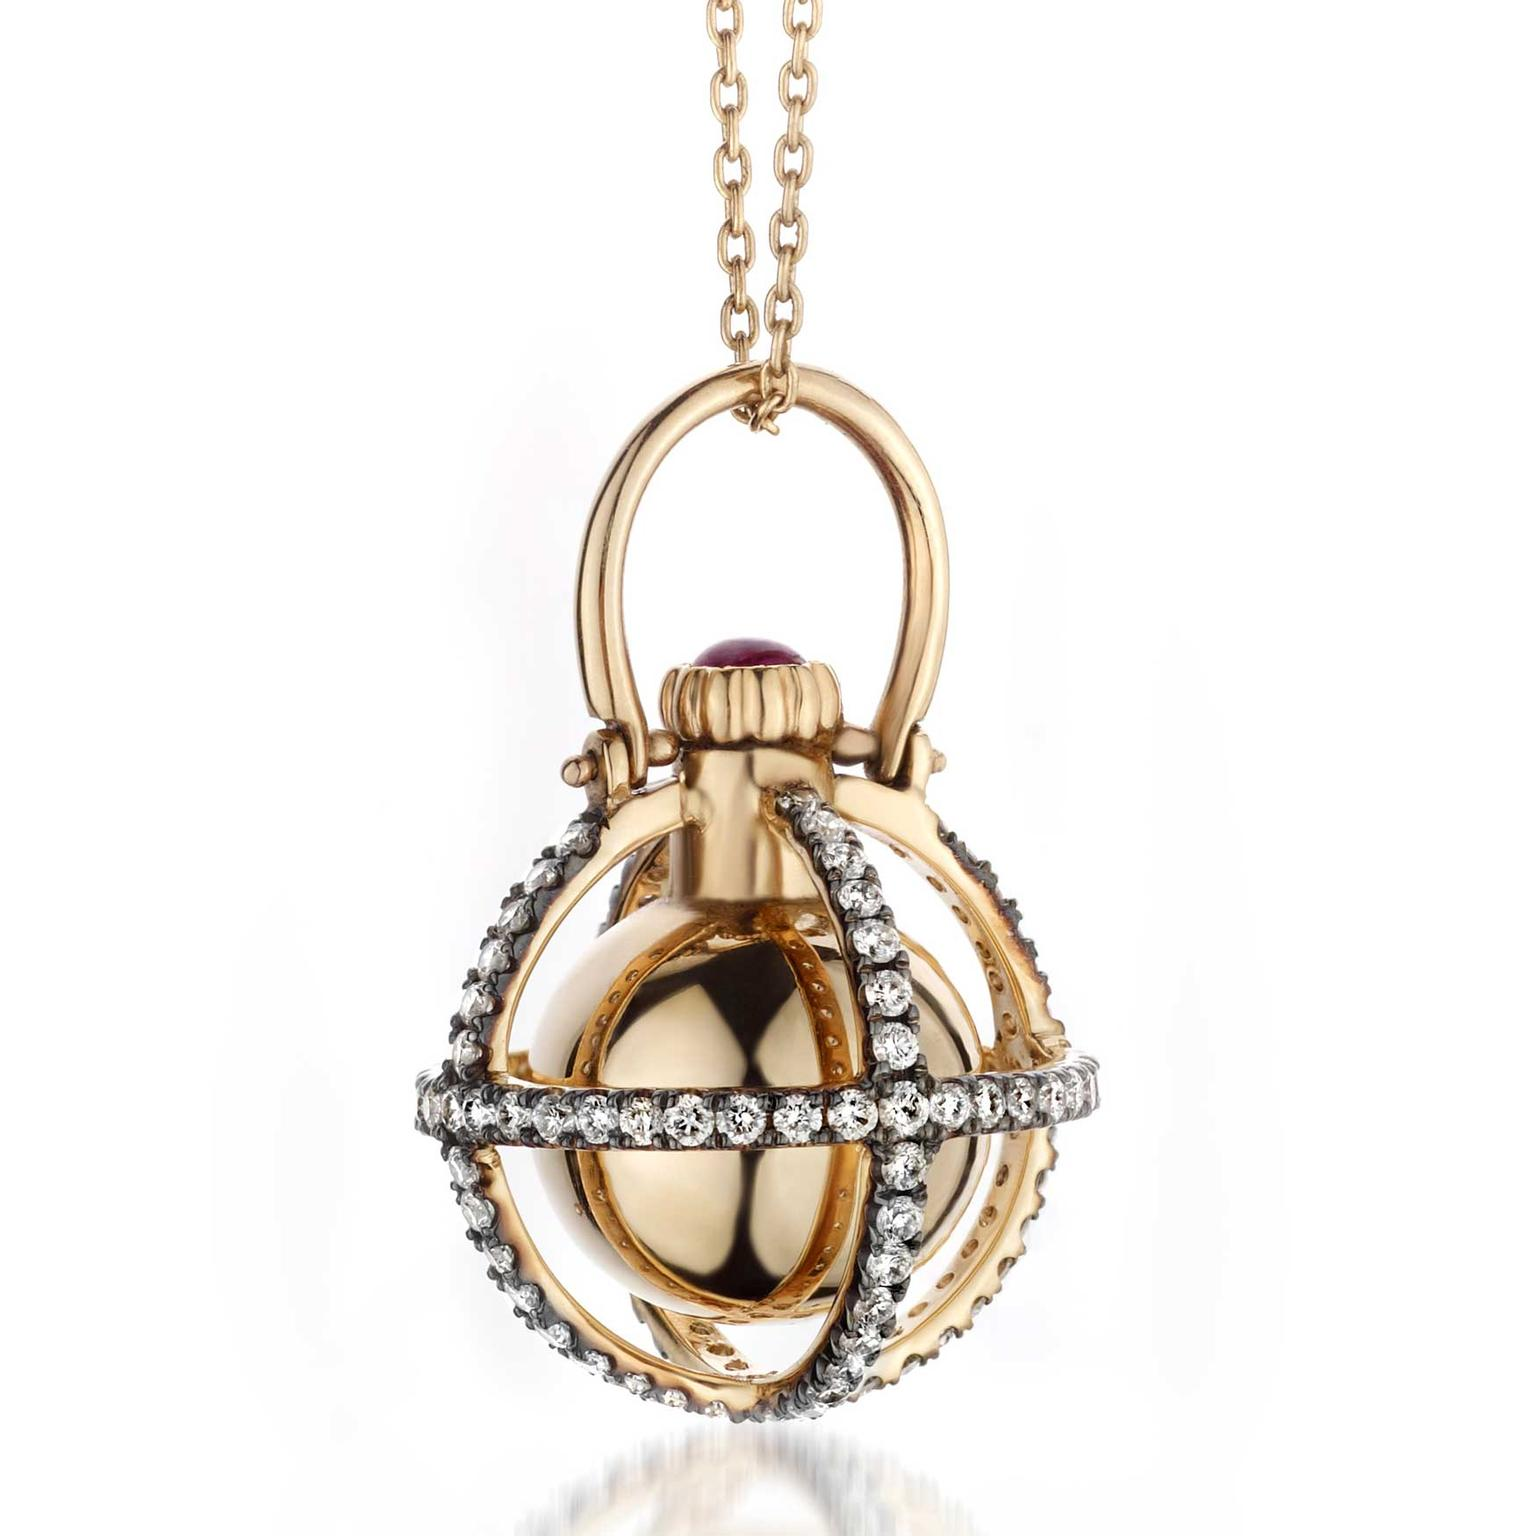 Melie perfume pendant in gold